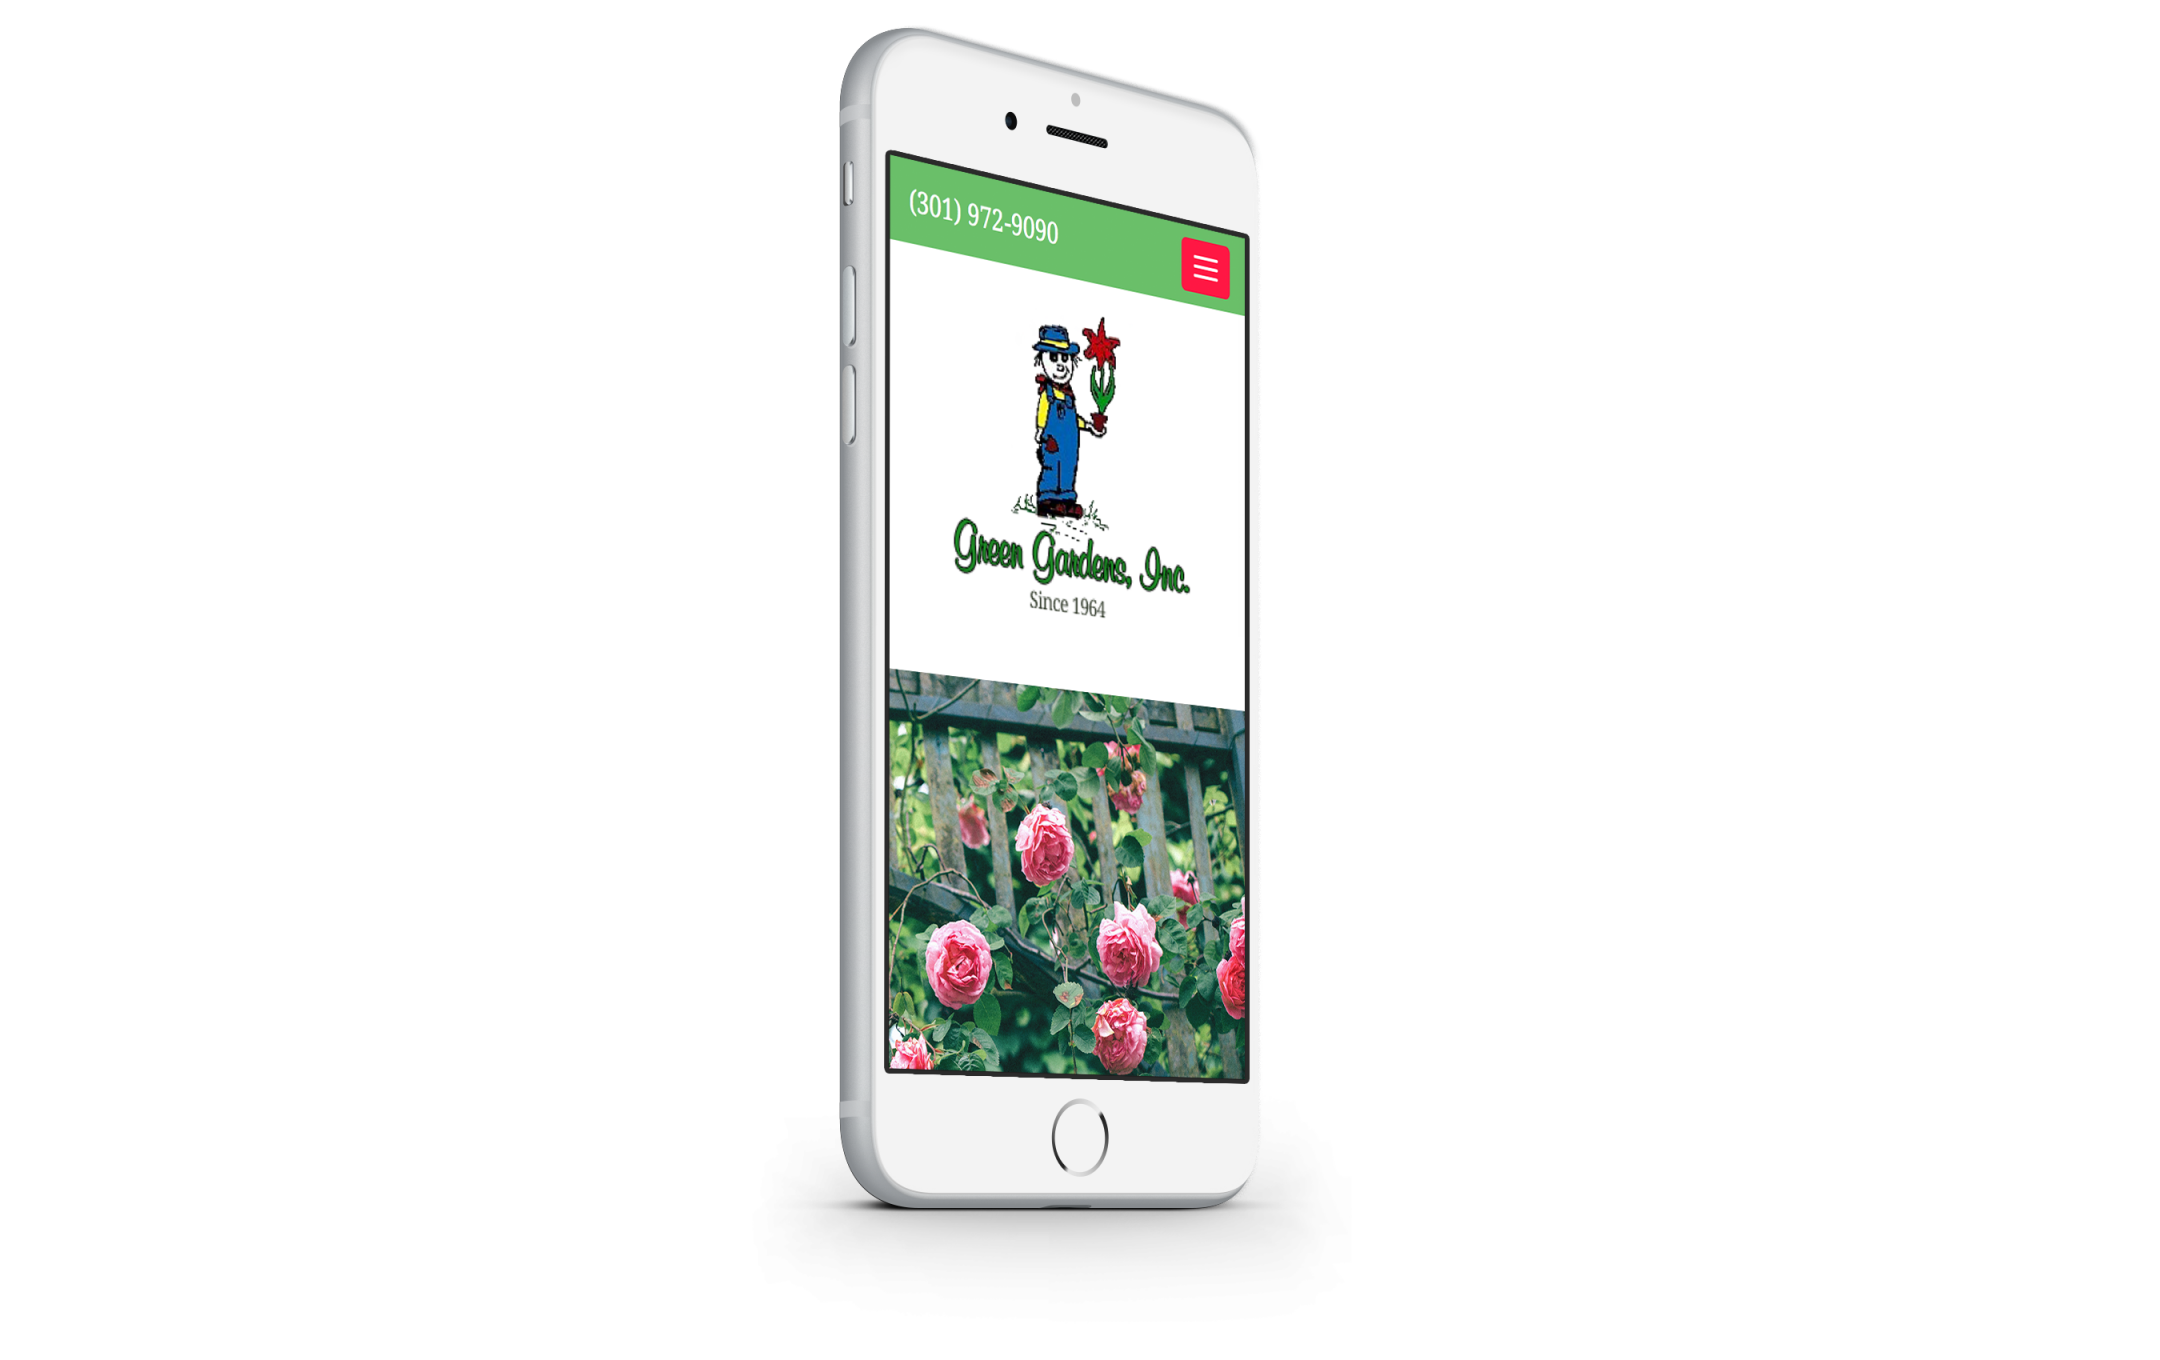 greengardensinc.com mobile website design